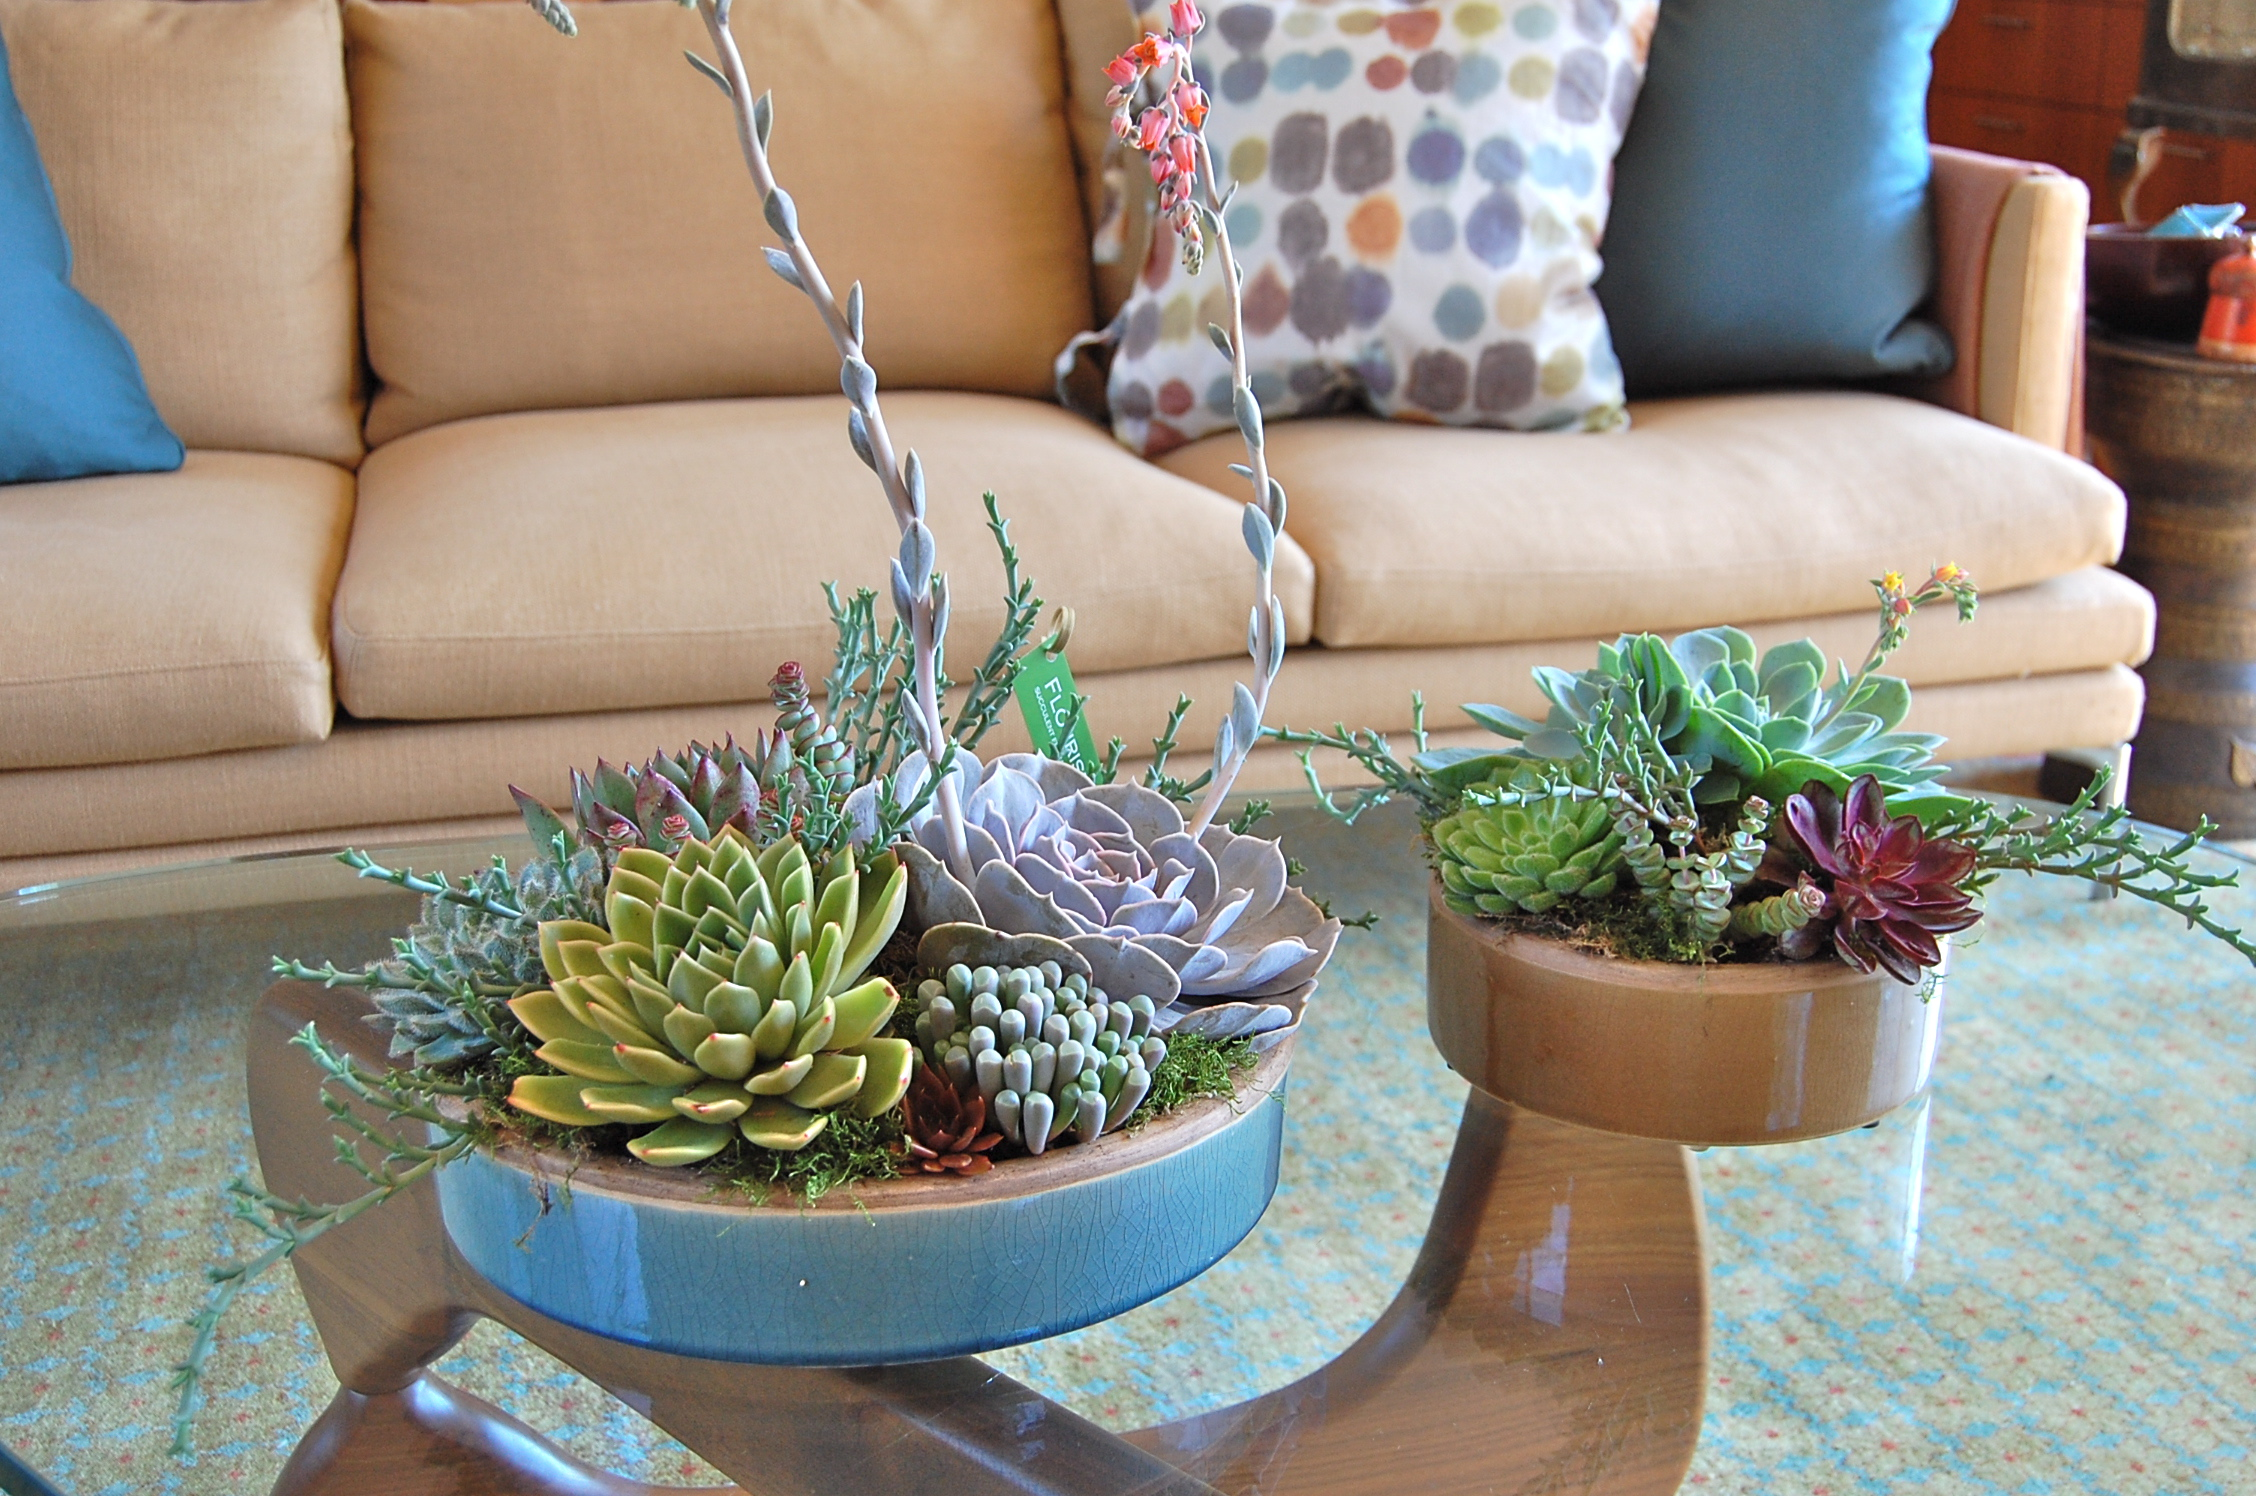 CUSTOM DESIGNED PLANTERS FOR FAMILY IN LARKSPUR, CA